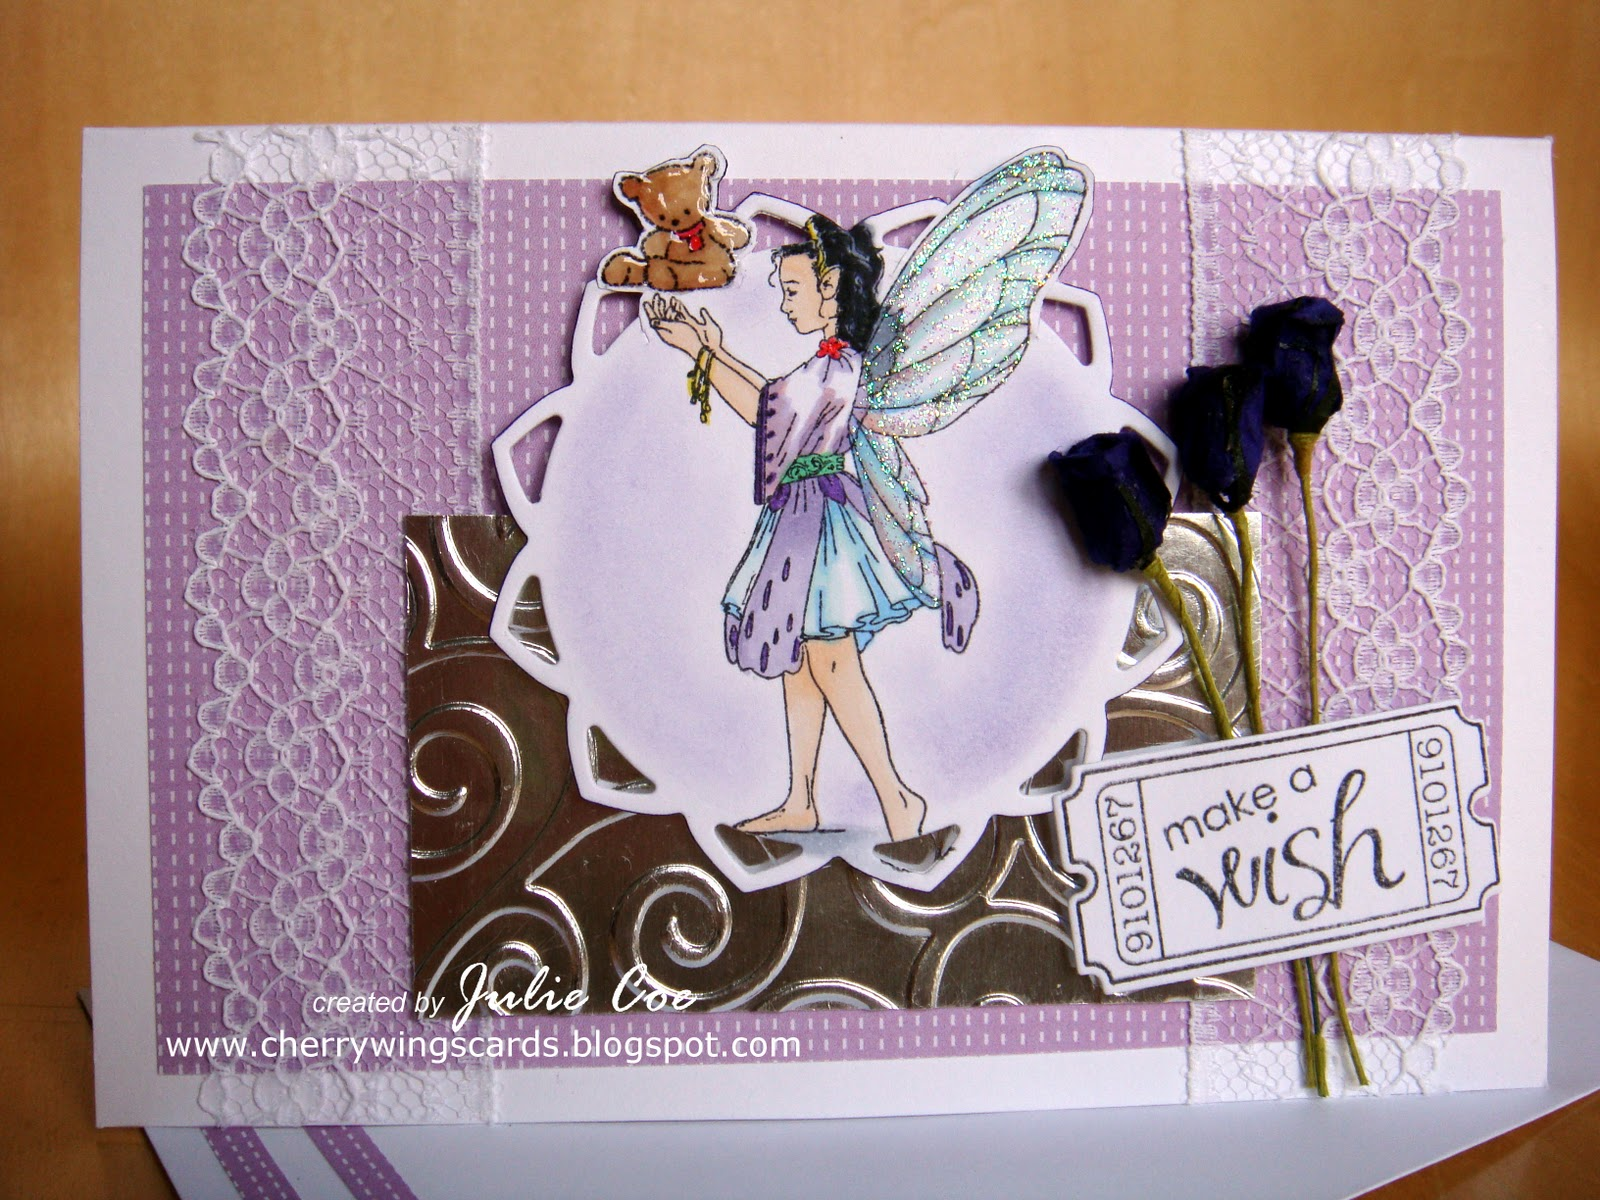 I Got This Fairy Stamp Free From The Cardmaking Papercraft Magazine Last Year And Never Used It She Was Meant To Be A Christmas Holding Snow